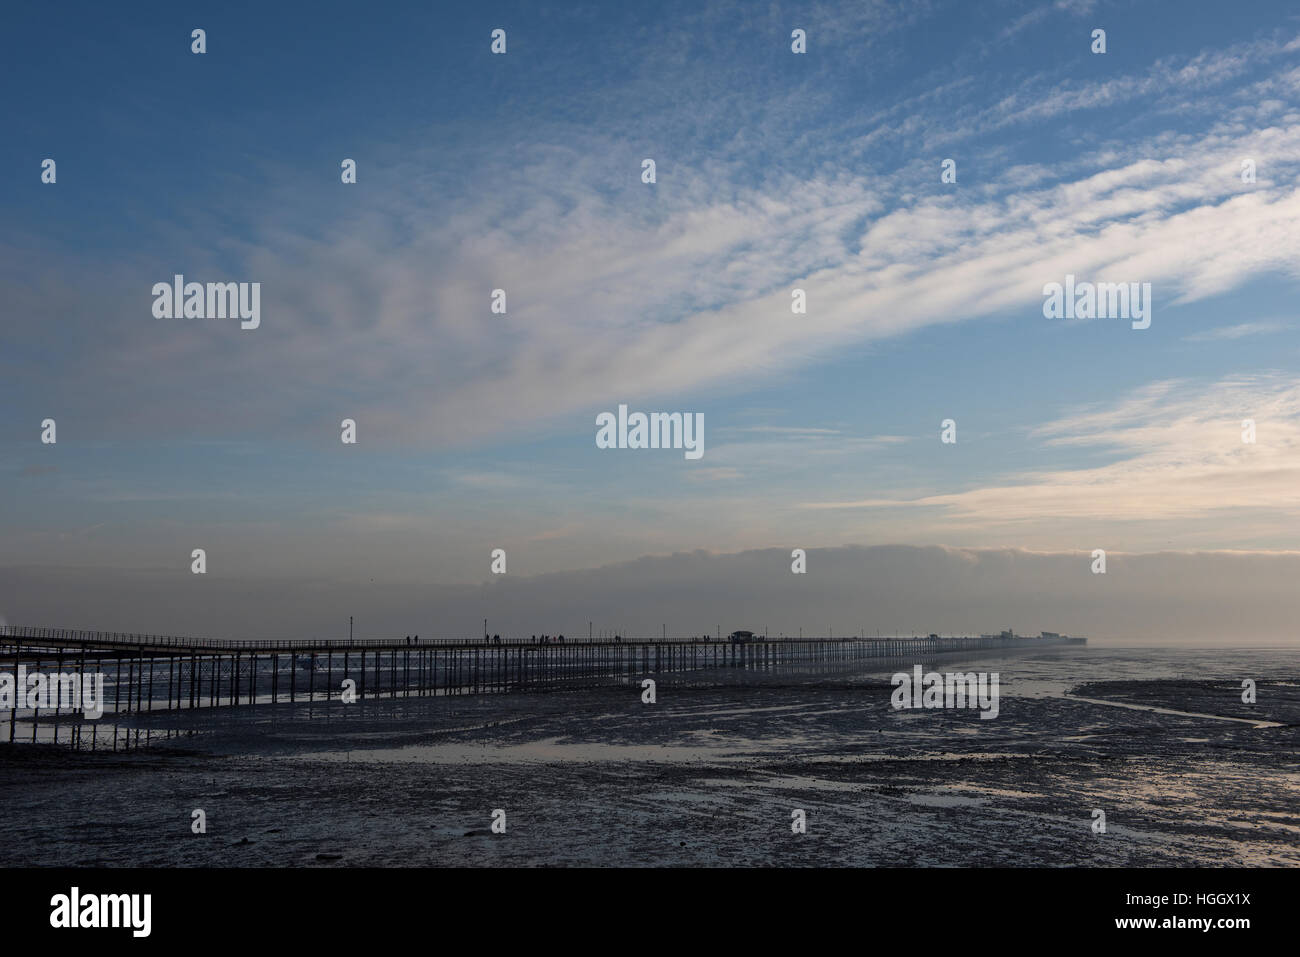 Southend Pier, Southend on Sea, Essex, England UK. 8 January 2017 Southend is a typical British seaside town - Stock Image